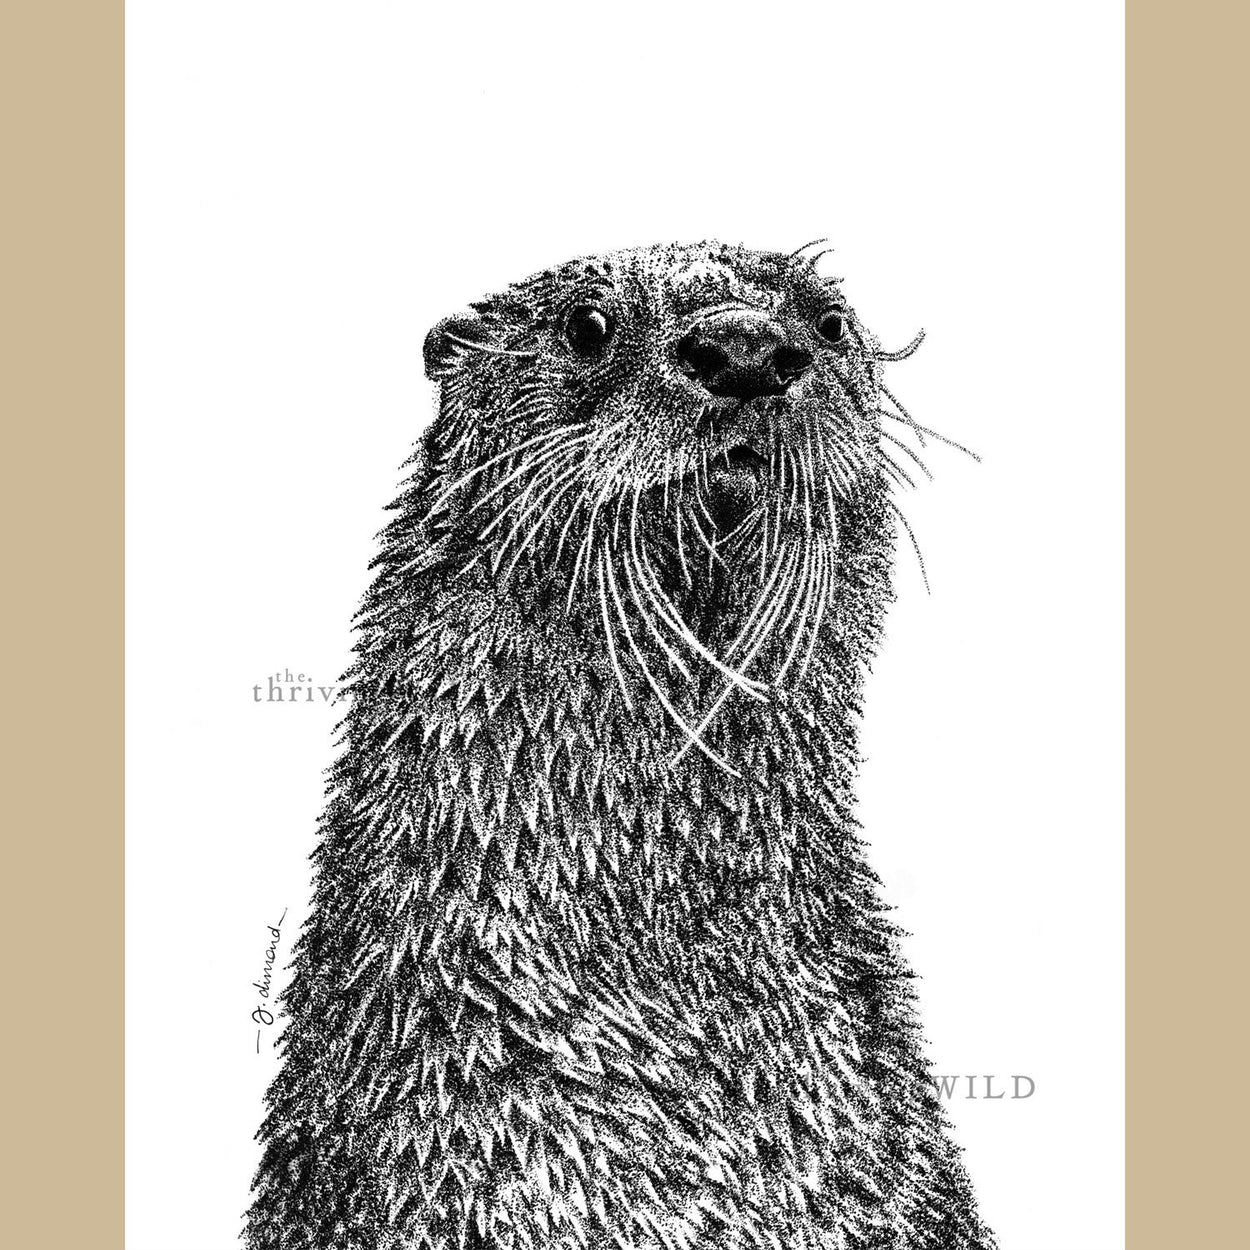 Otter Pen Stippling Drawing - The Thriving Wild